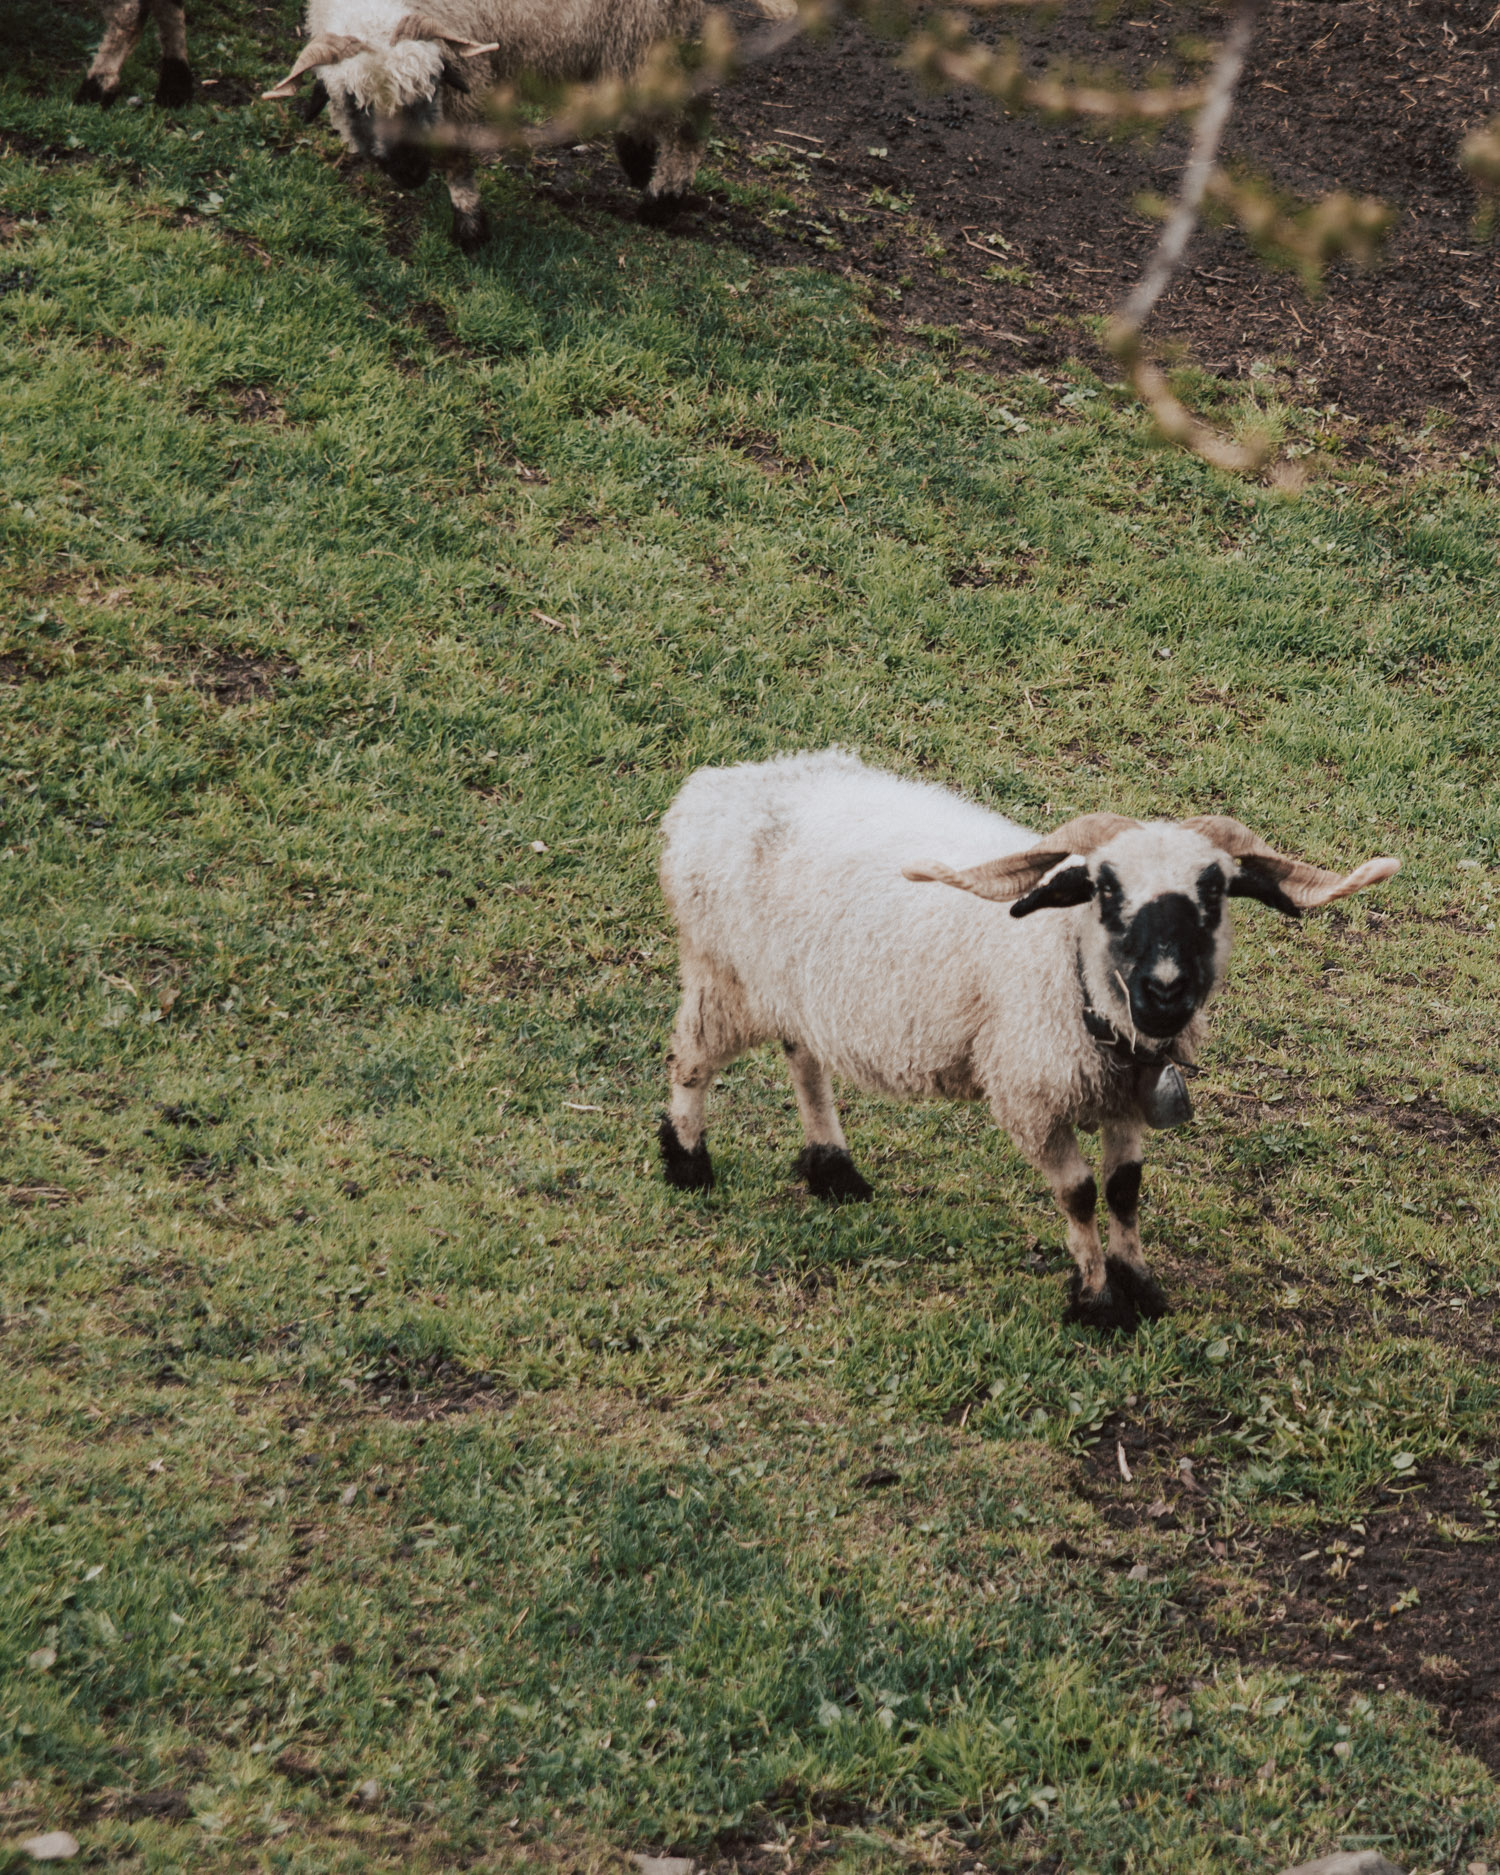 Blacknose sheep in Zermatt